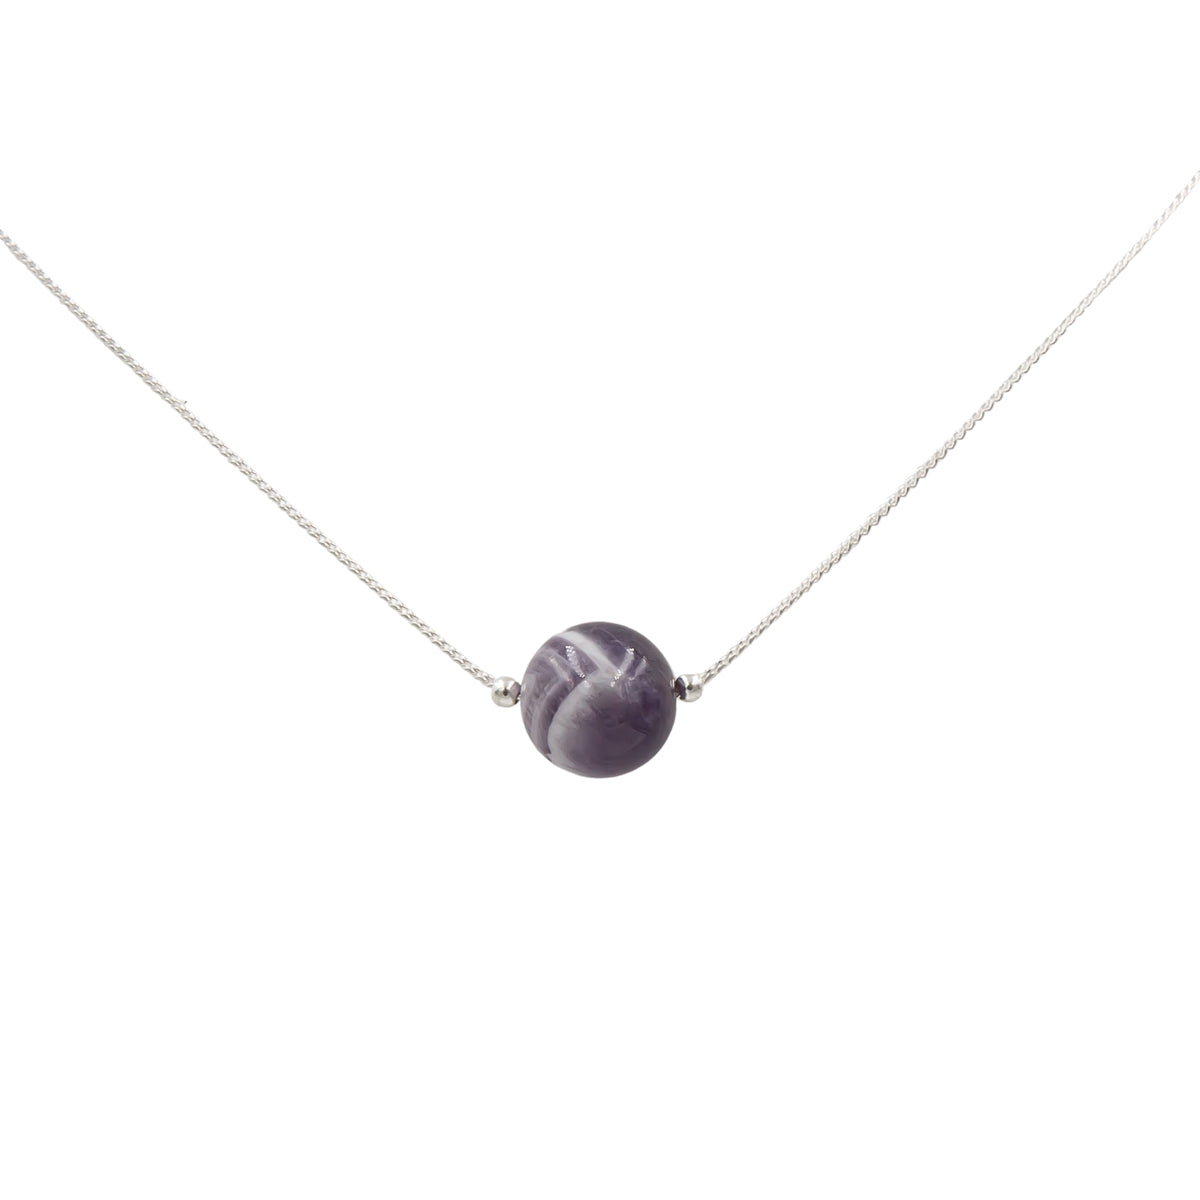 Handmade Amethyst solitaire sterling silver necklace